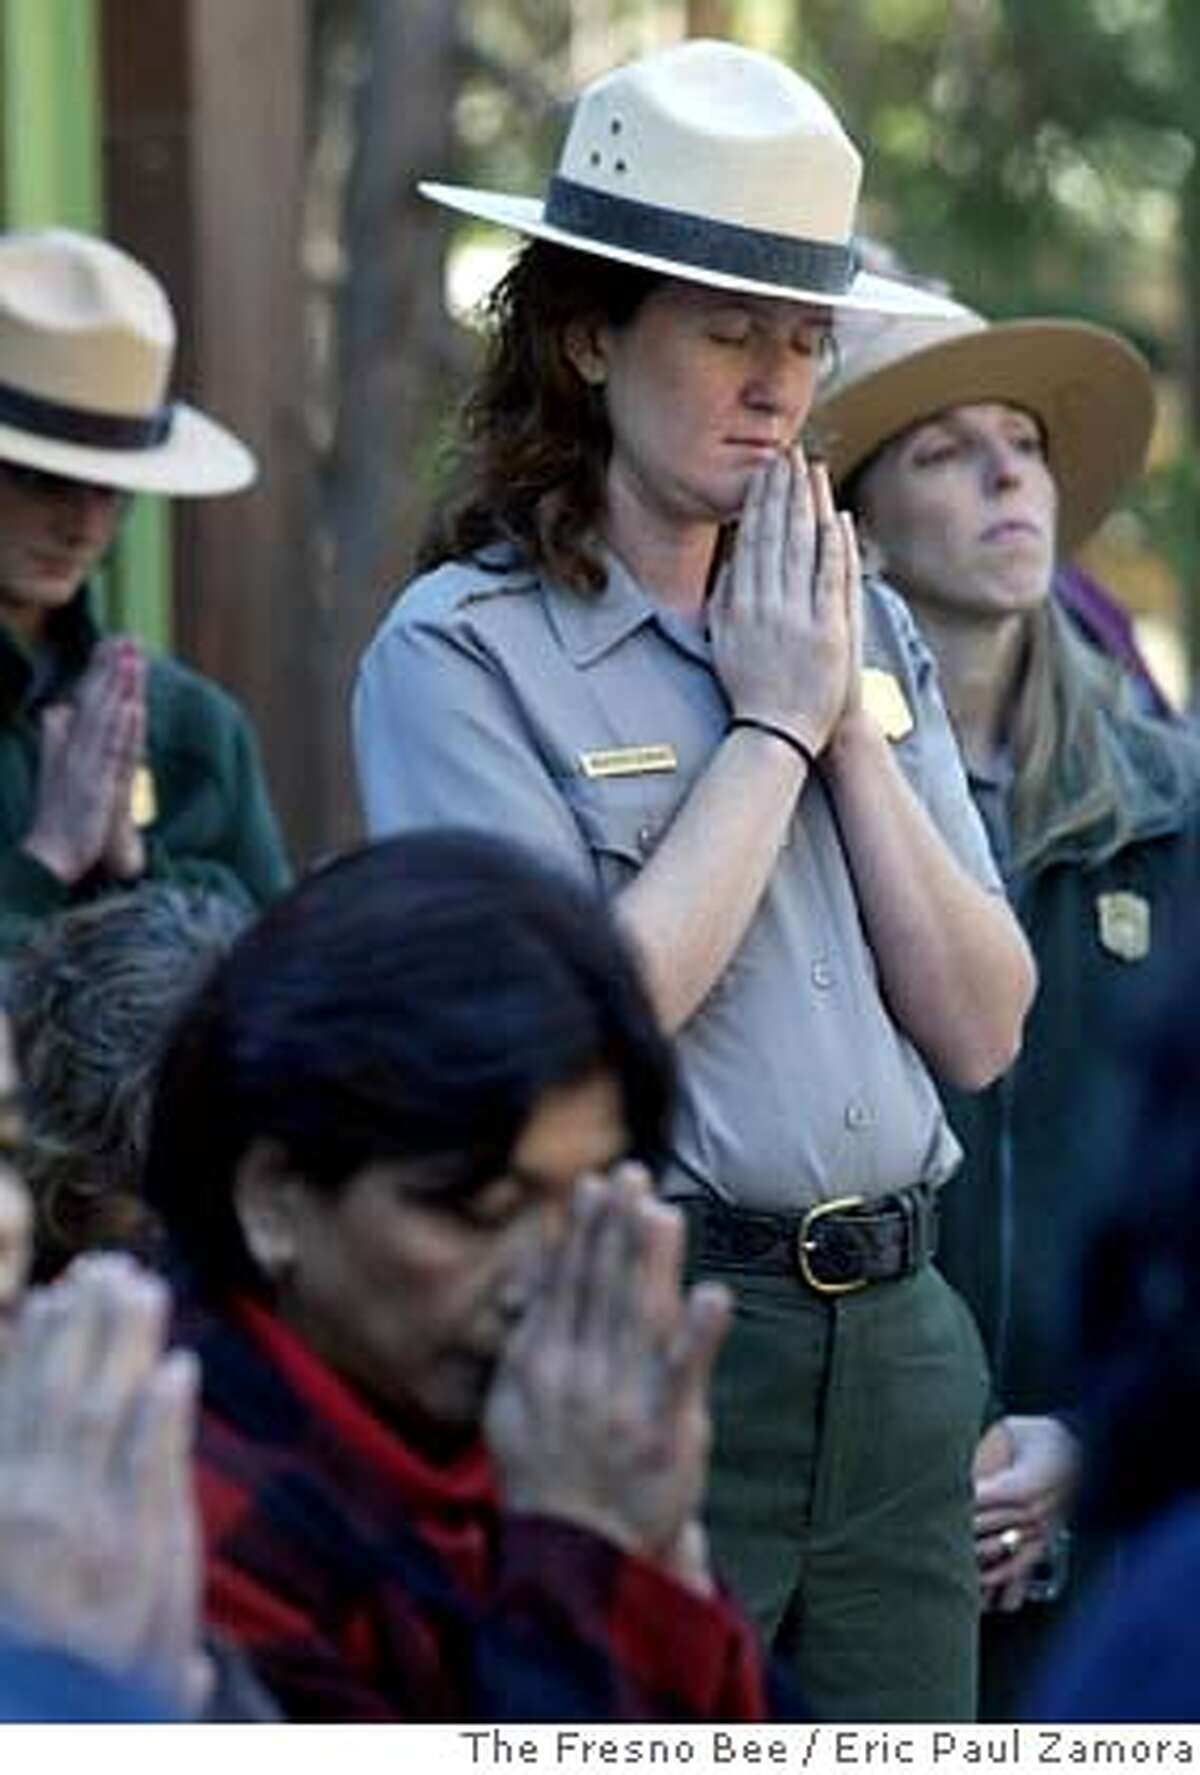 Heather Dumais, an air monitoring technician for Sequoia and Kings Canyon National Parks, bows her head during a prayer led by two Buddhist monks during the ceremony naming Sequoia and Kings Canyon National Parks sister parks to Cambodia's Samlaut Multiple Use Area on Tuesday, Oct. 3, 2006 in Giant Forest, Sequoia National Park. Photographed at Giant Forest in Sequoia National Park, CA on Tuesday, Oct. 3, 2006. ERIC PAUL ZAMORA-THE FRESNO BEE